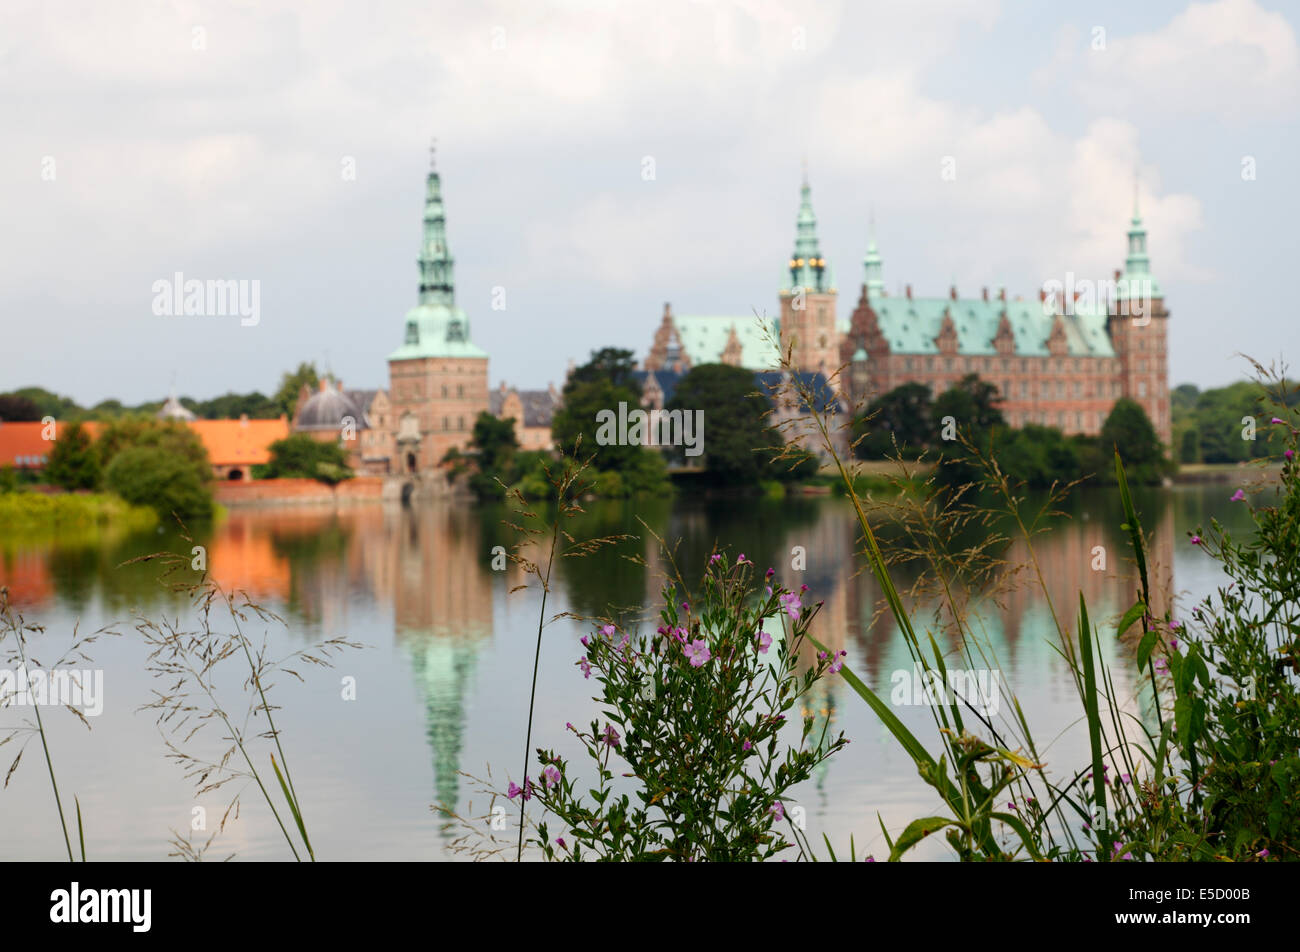 Frederiksborg Castle in Hillerød, North Zealand, seen from the other bank of the Castle Lake. Great willow - Stock Image